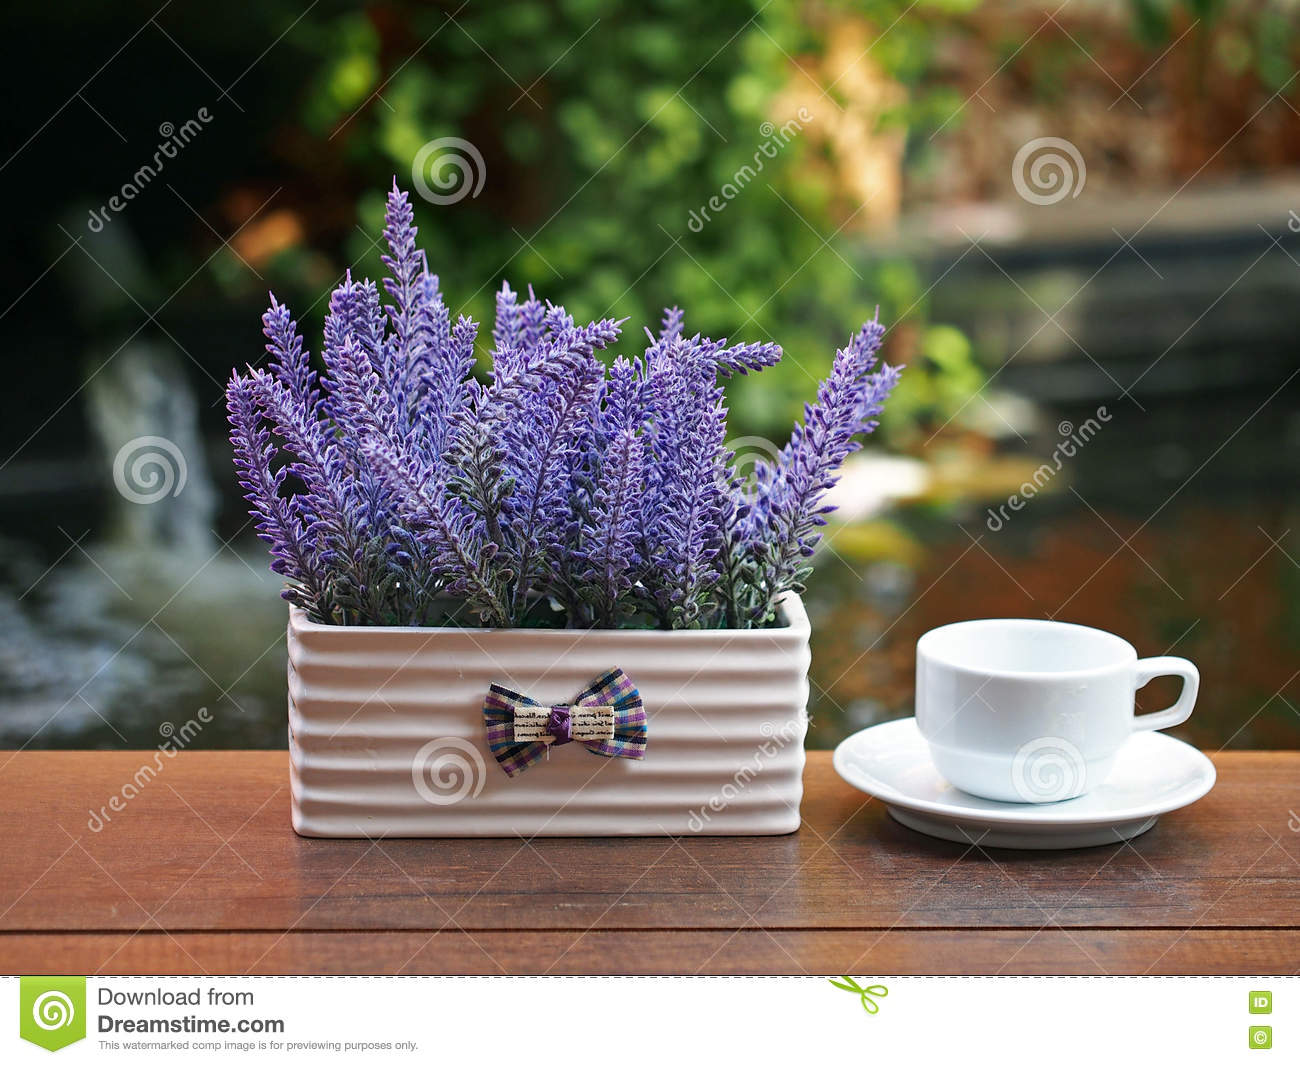 Coffee Cup On Wooden With Flower In Vase On Table, In The ...